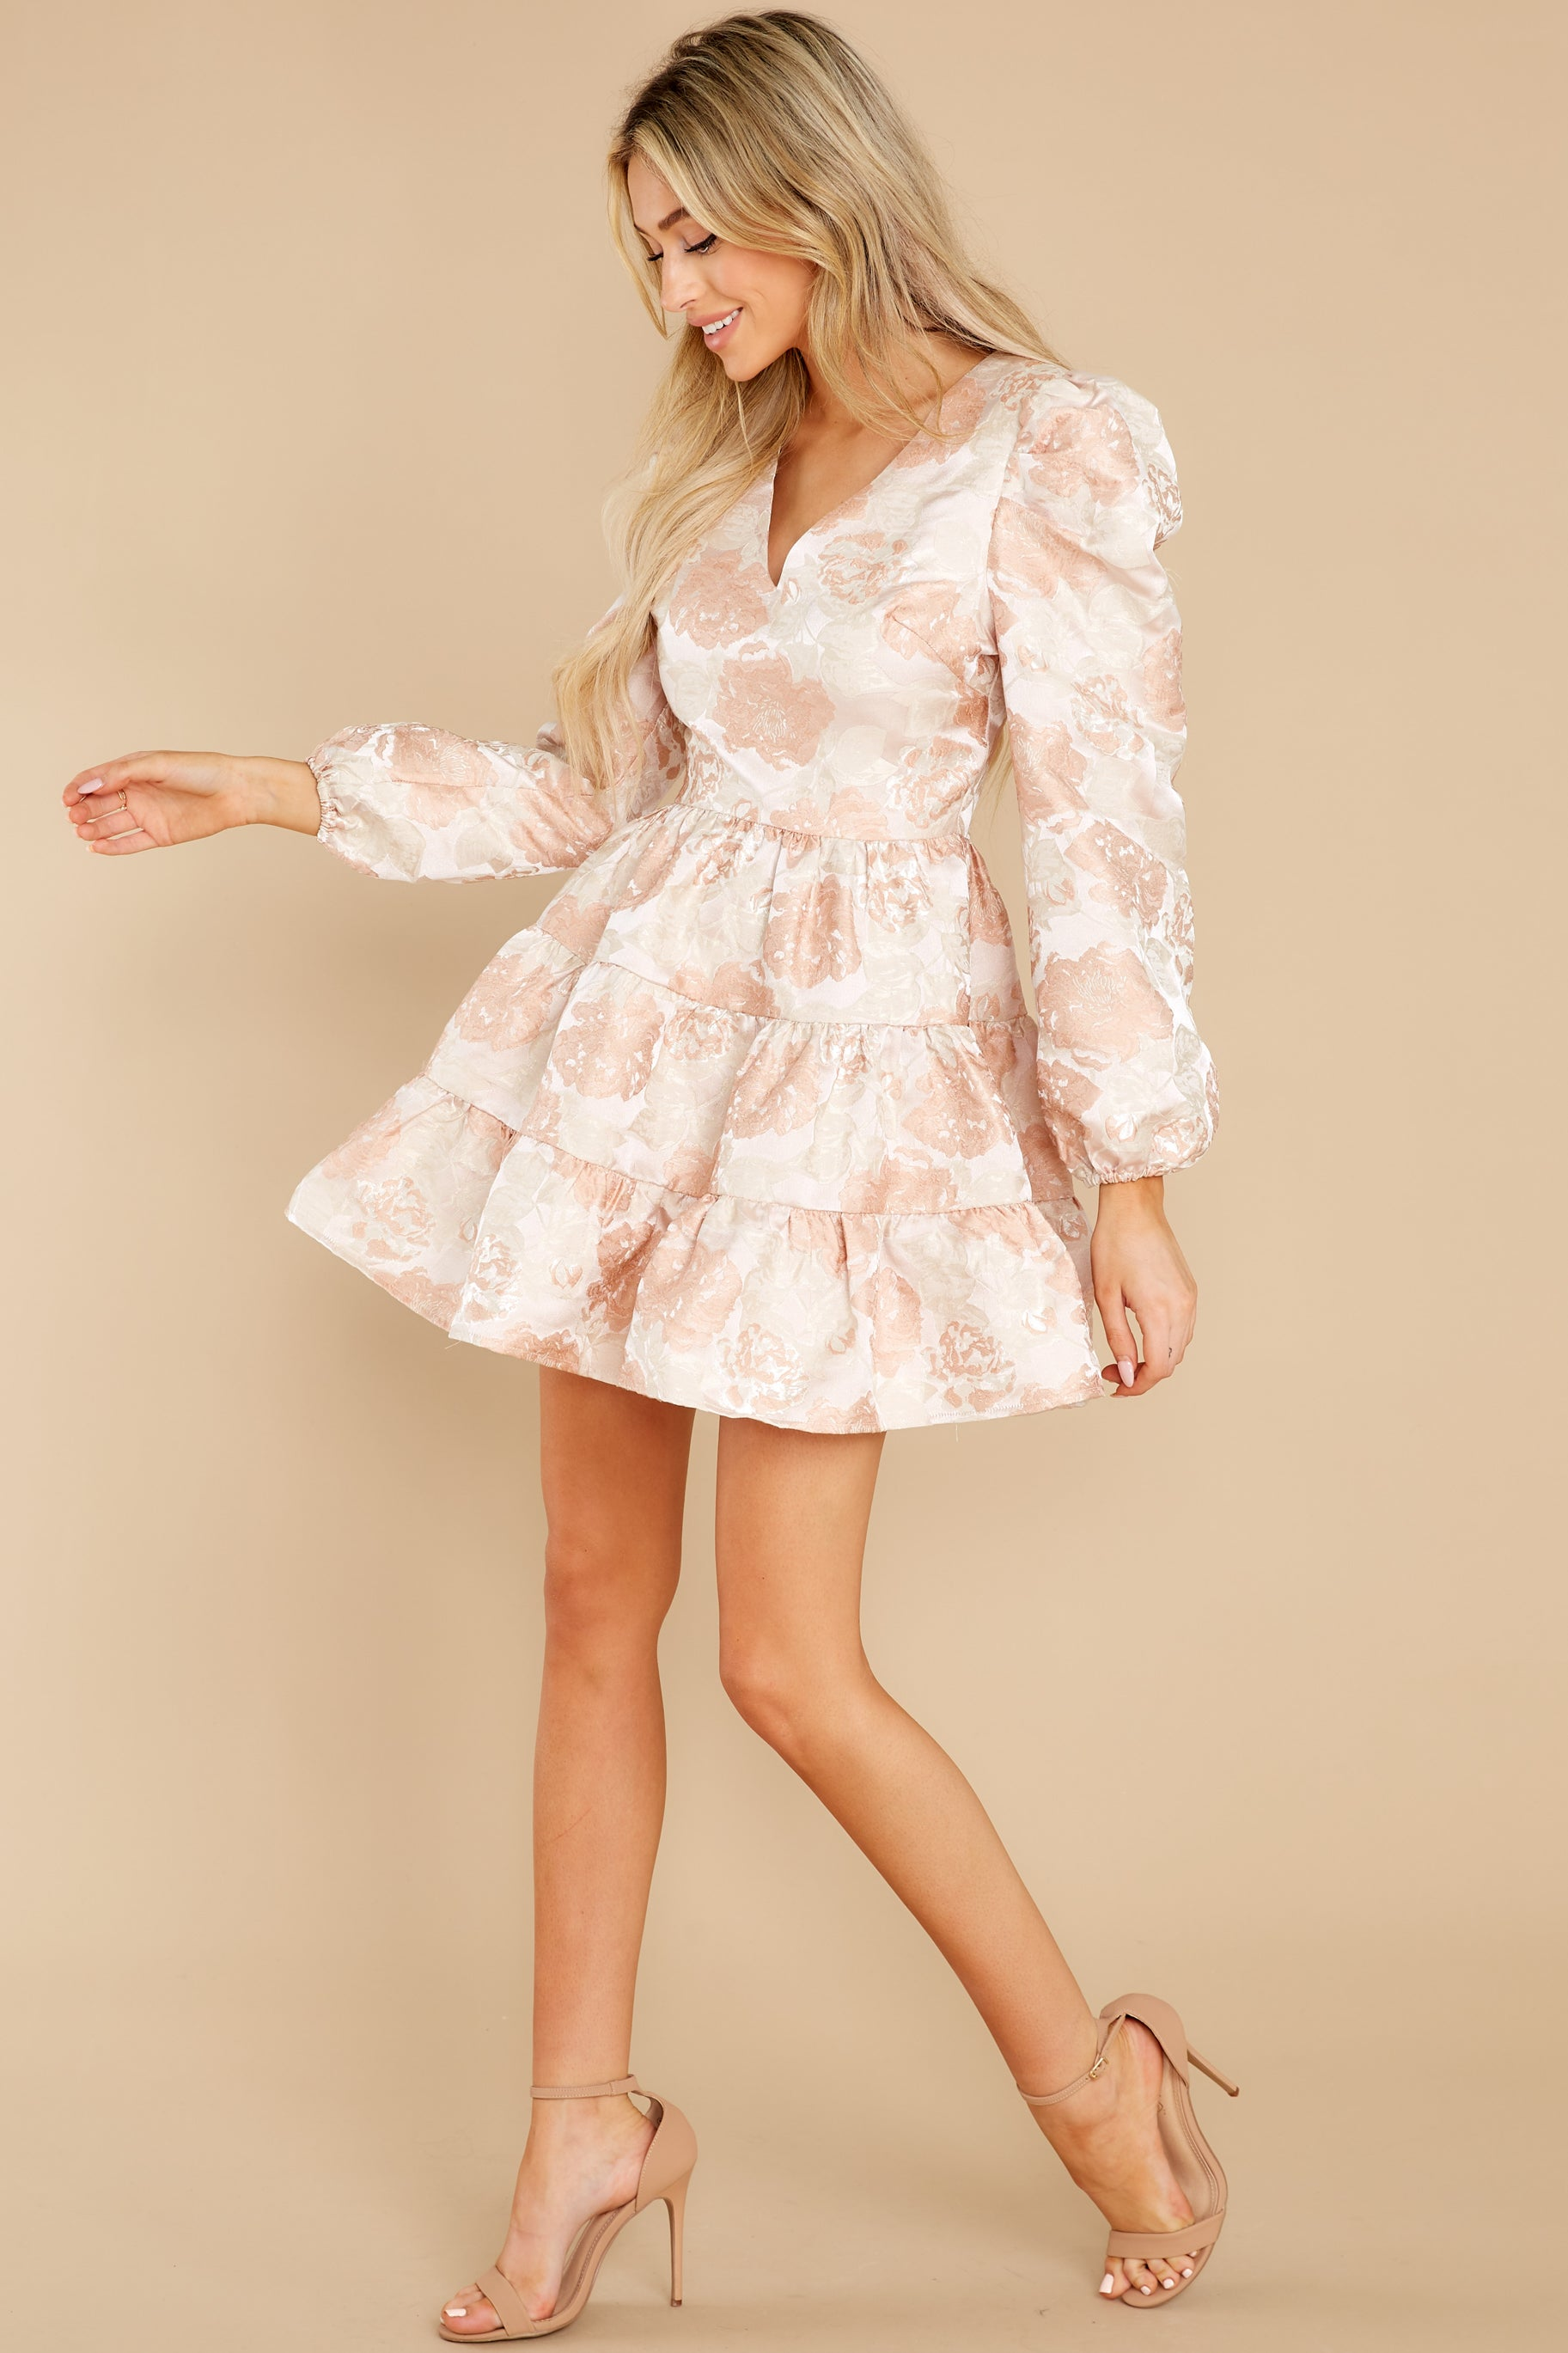 3 Celebratory Cheers Blush And Beige Floral Print Dress at reddress.com